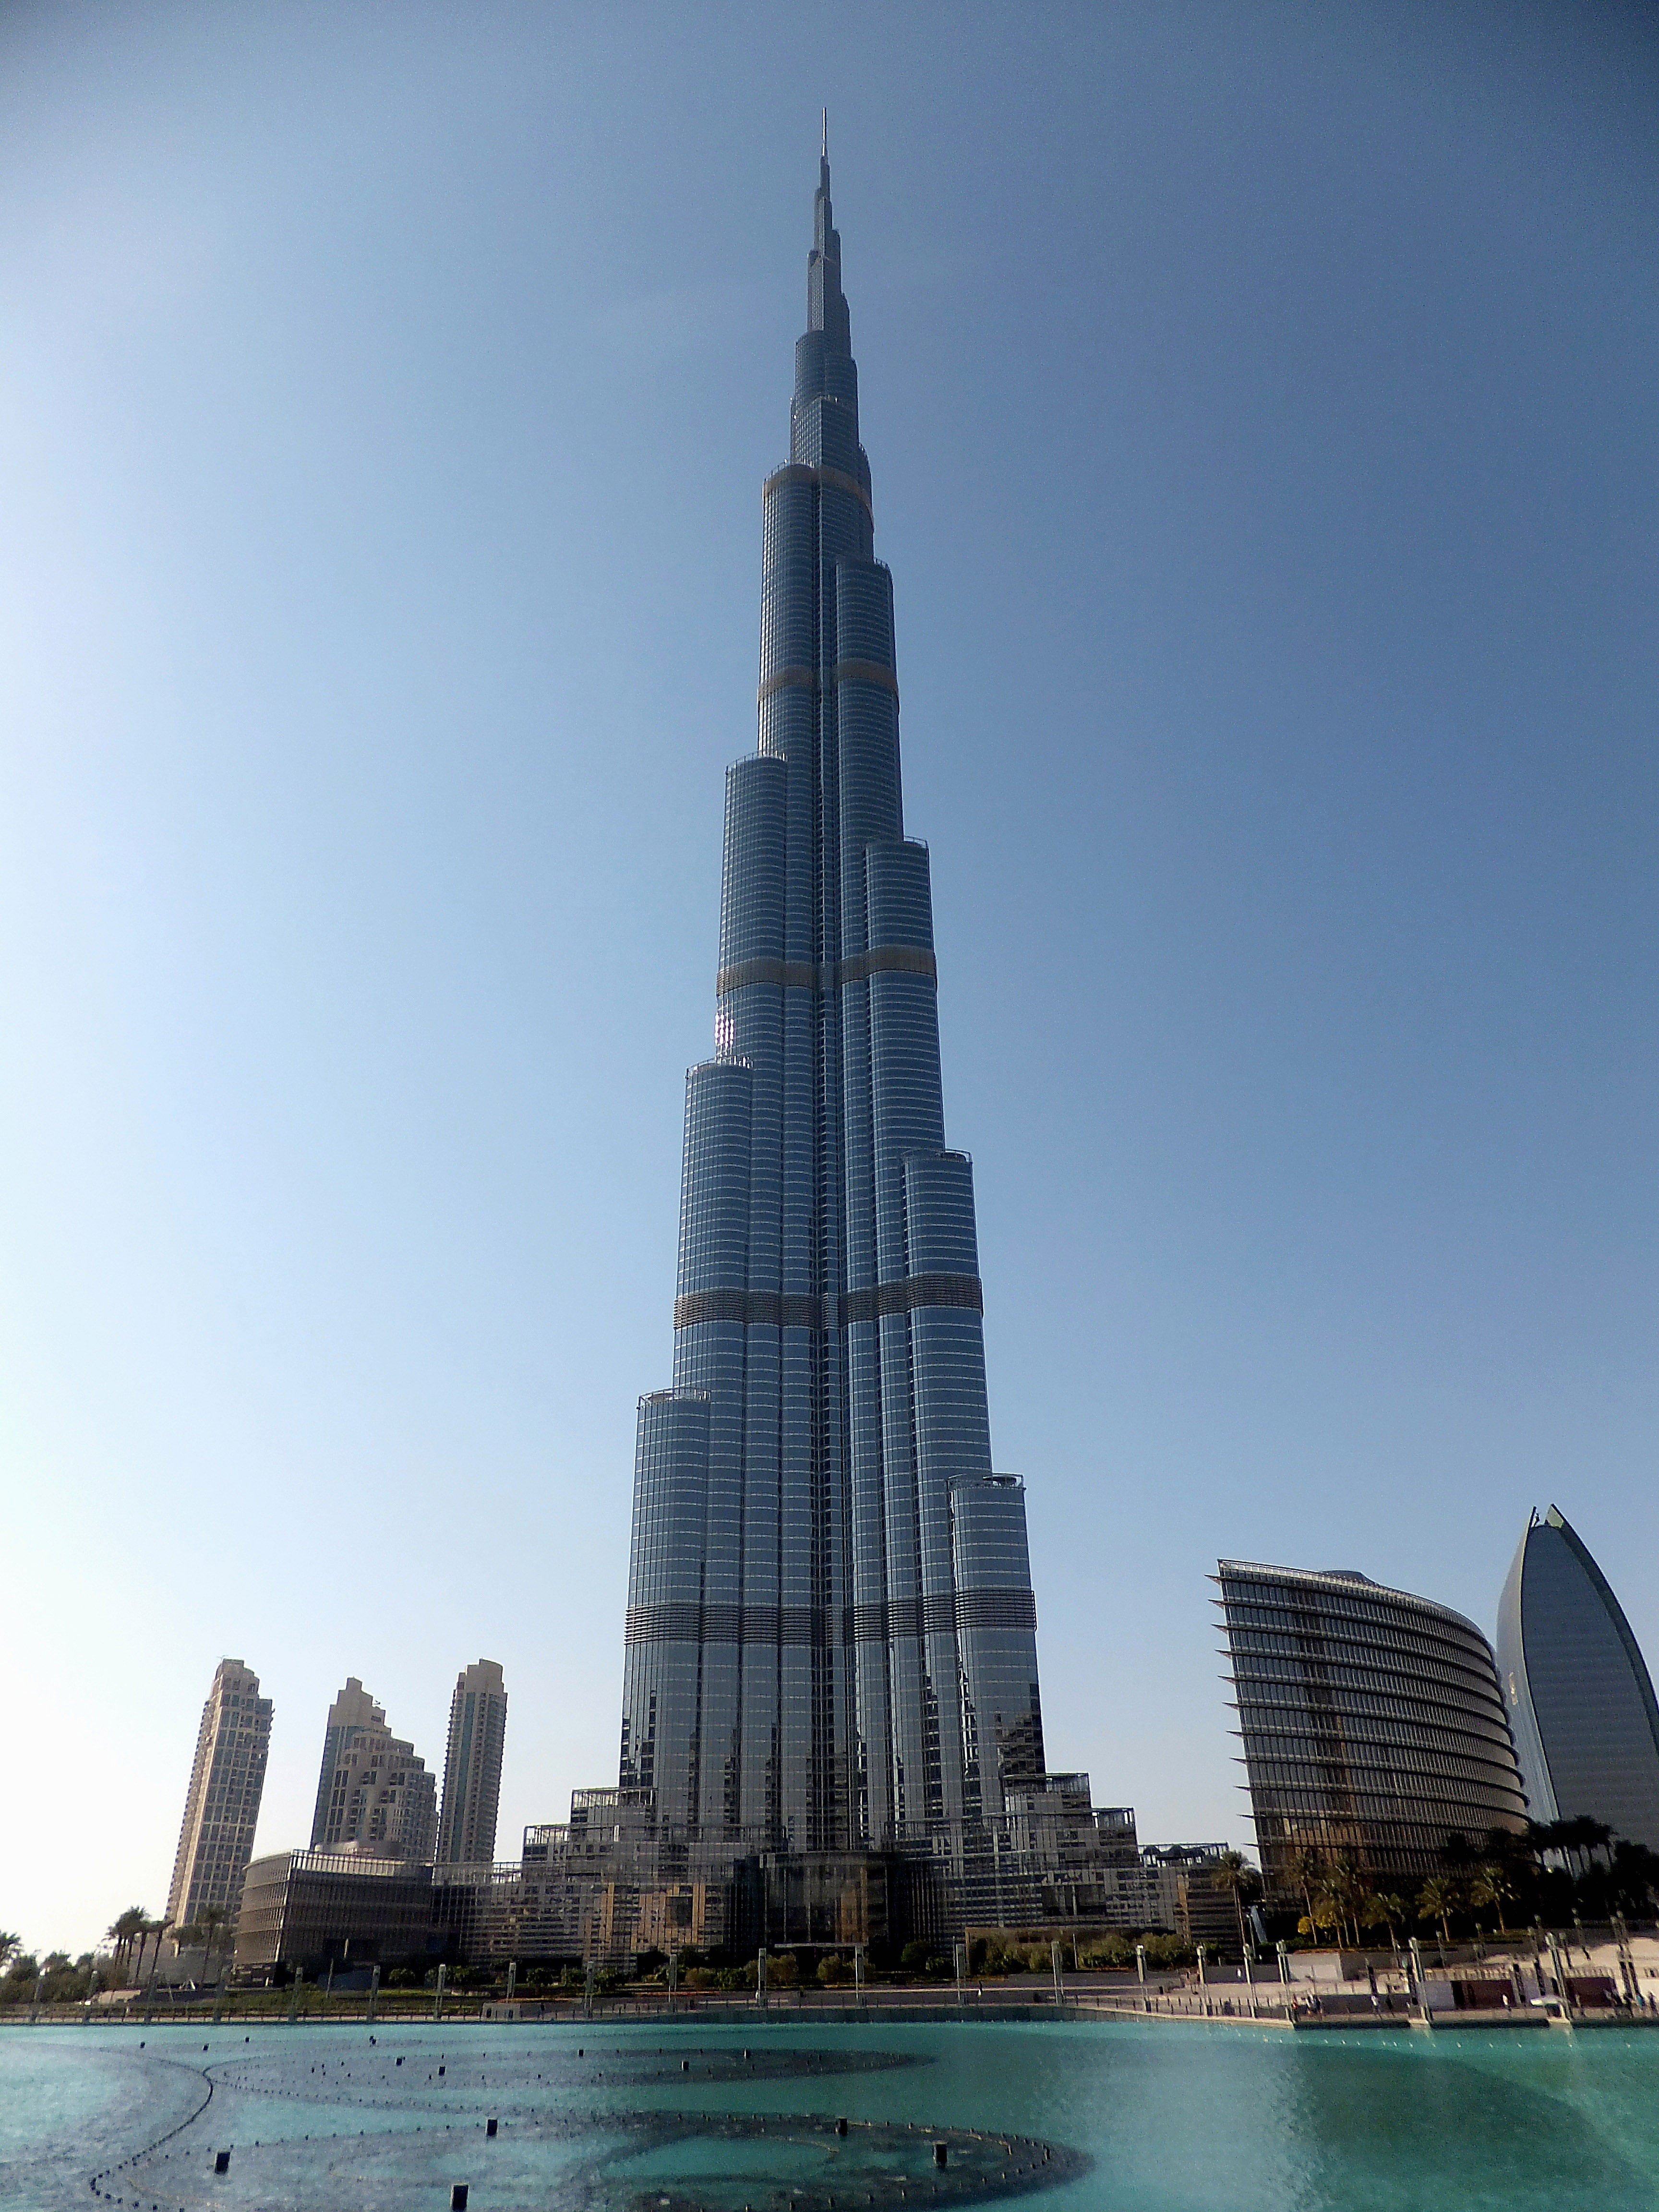 the tallest building in the world  burj khalifa in dubai skyline clip art transparent background skyline clipart free